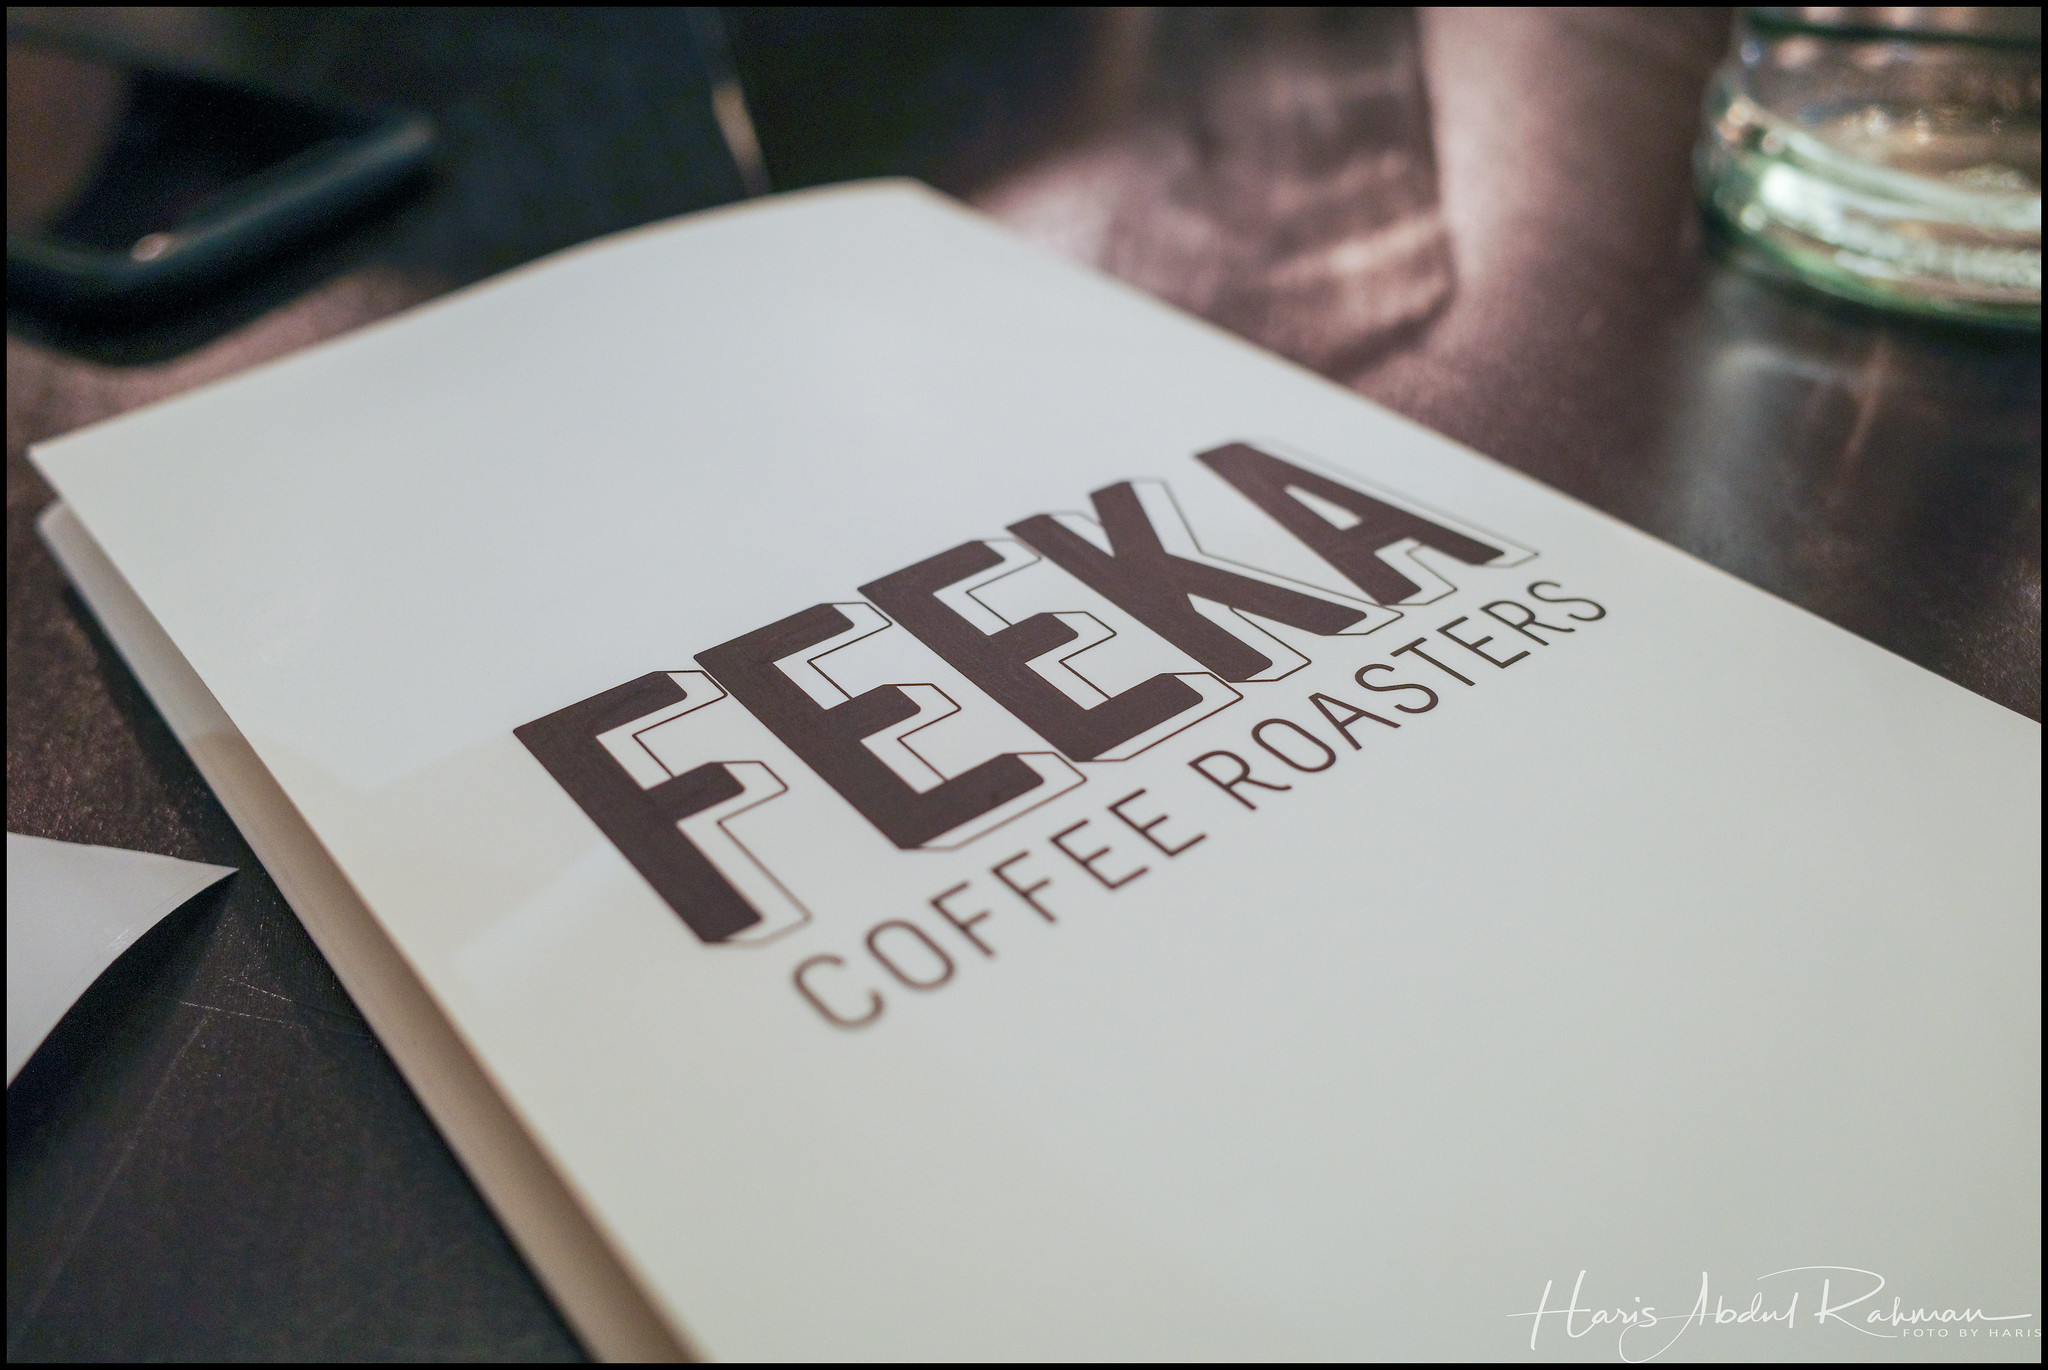 I have not been to Feeka for some time now